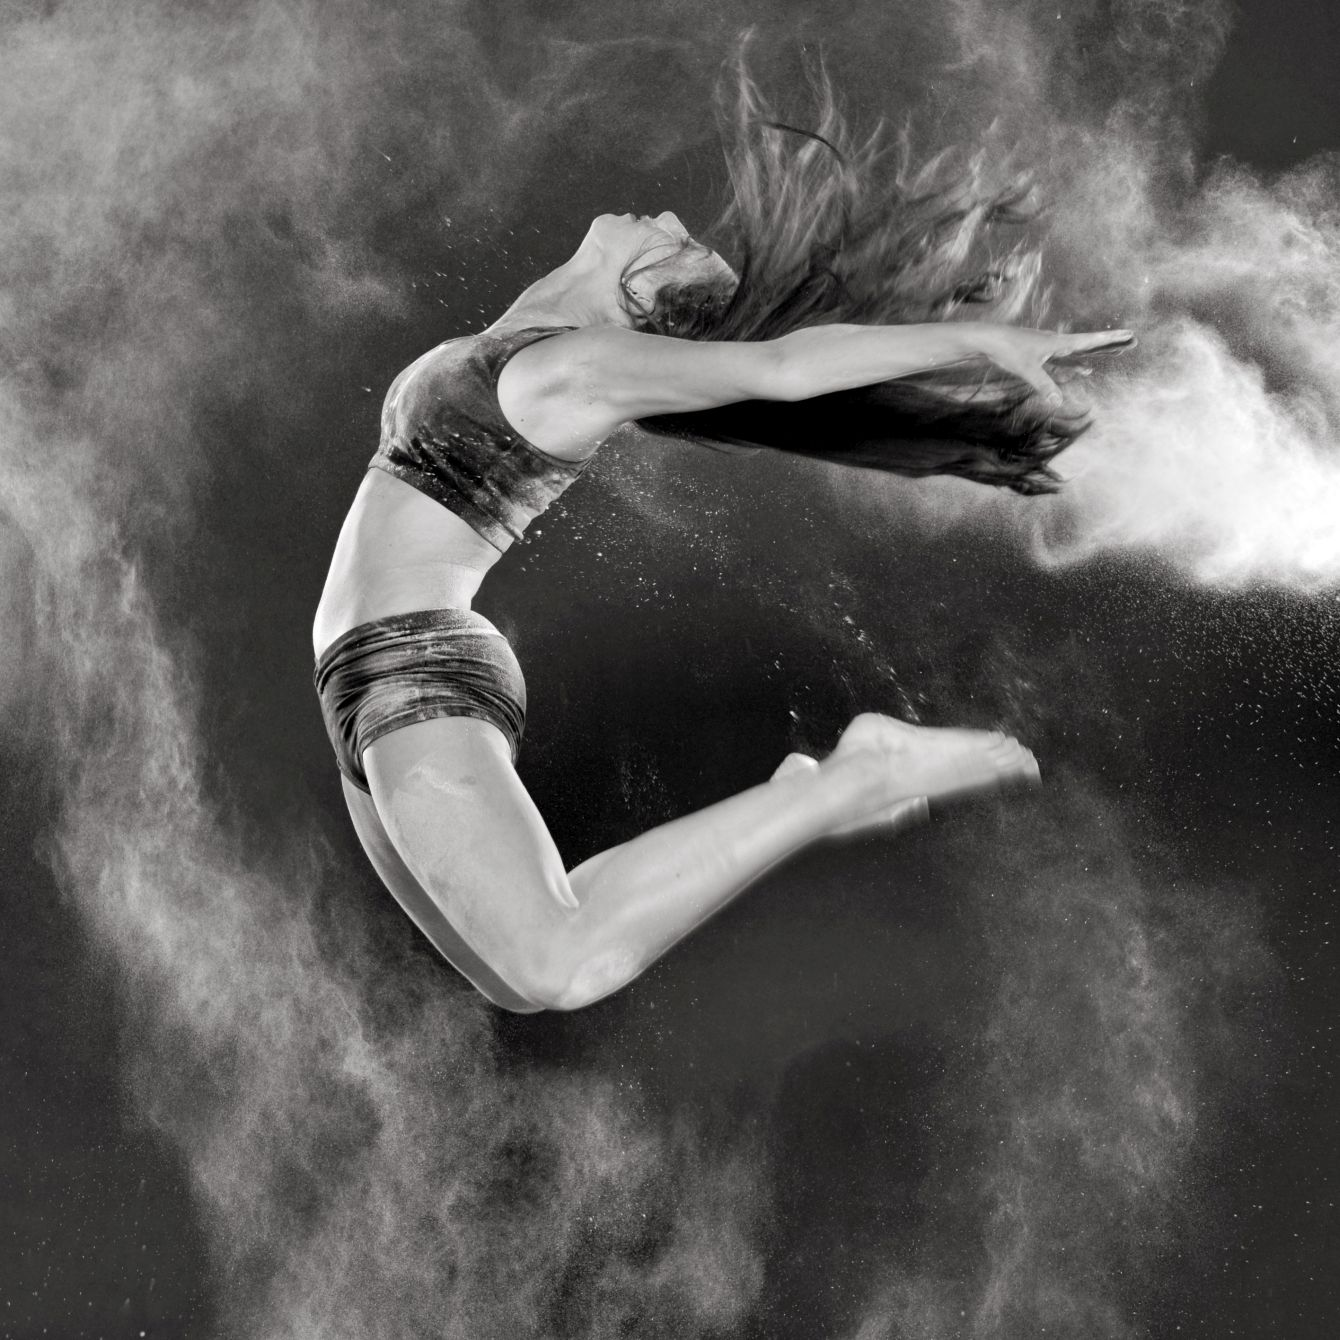 dance-and-dust-04